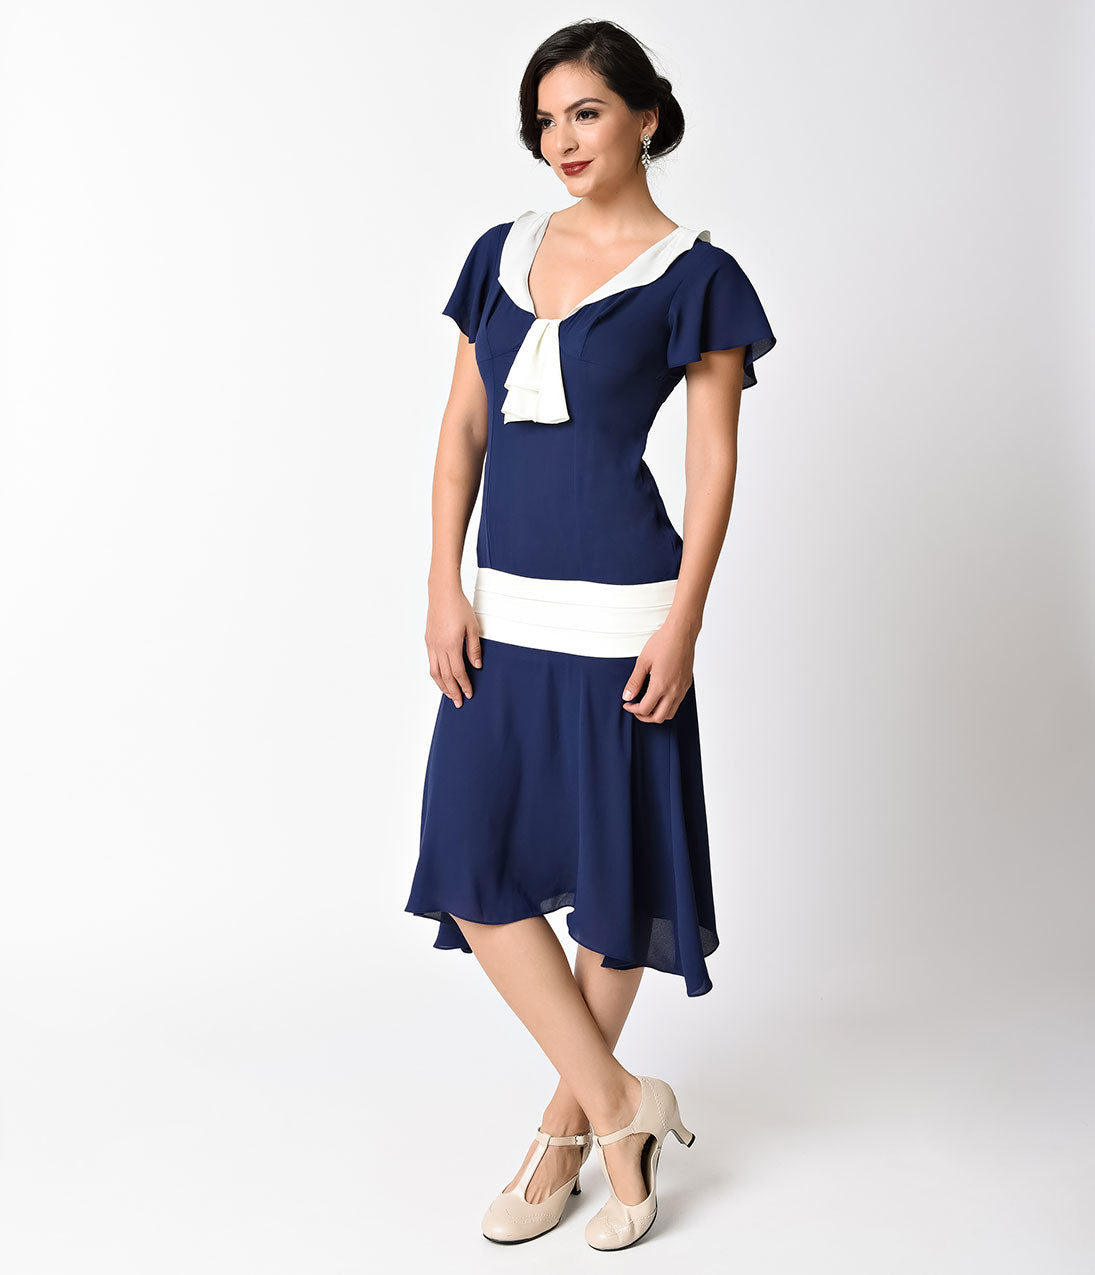 1920s Day Dresses, Tea Dresses, Mature Dresses with Sleeves Unique Vintage 1920S Style Navy Blue  Ivory Wilshire Chiffon Flapper Day Dress $78.00 AT vintagedancer.com